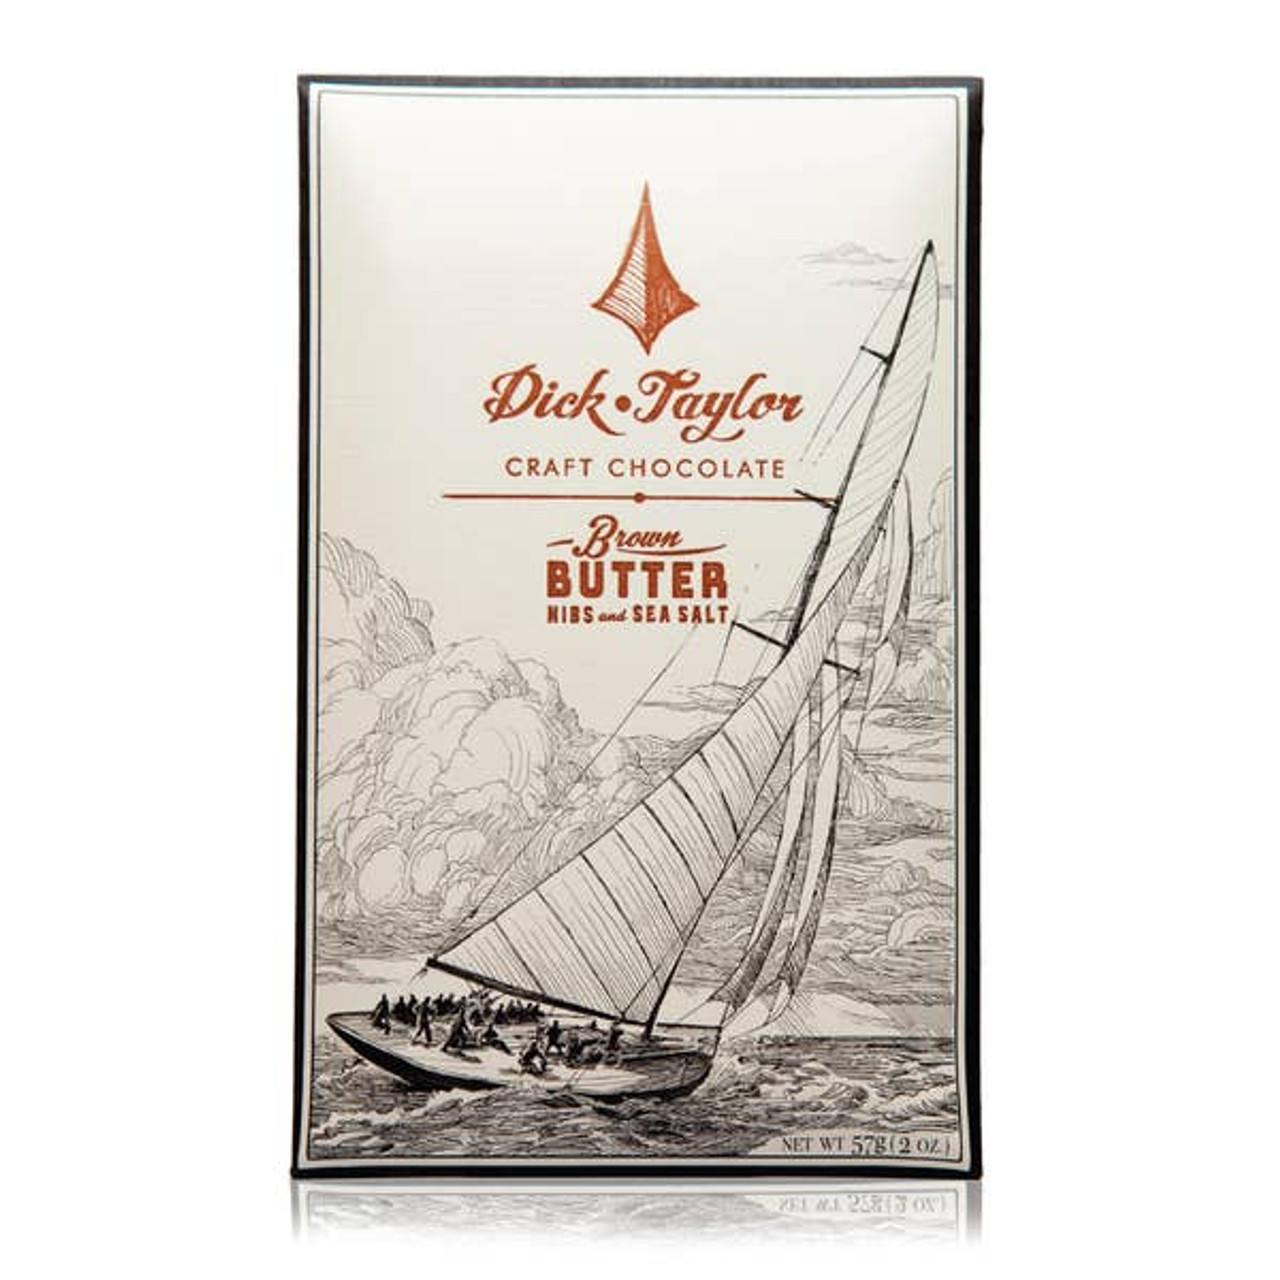 Brown Butter Sea Salt and Nibs Chocolate Dick Taylor Craft Chocolate